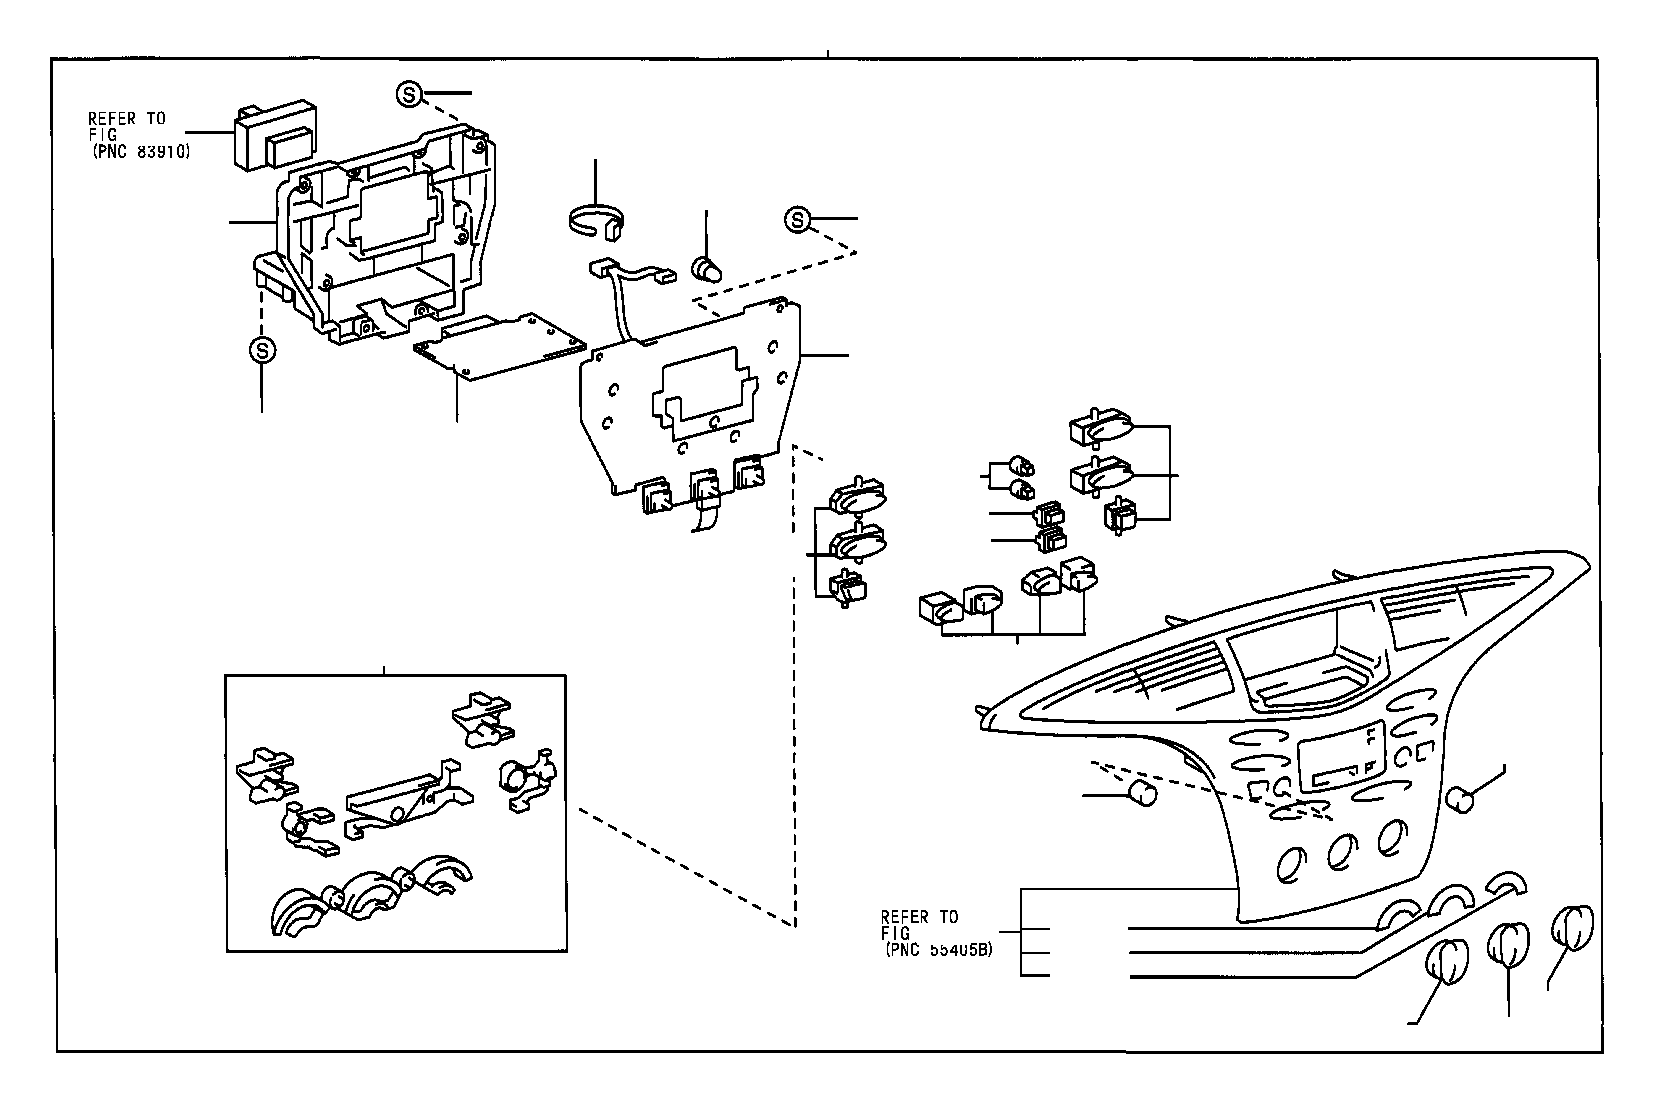 Toyota Prius Instrument Panel Circuit Board Circuit